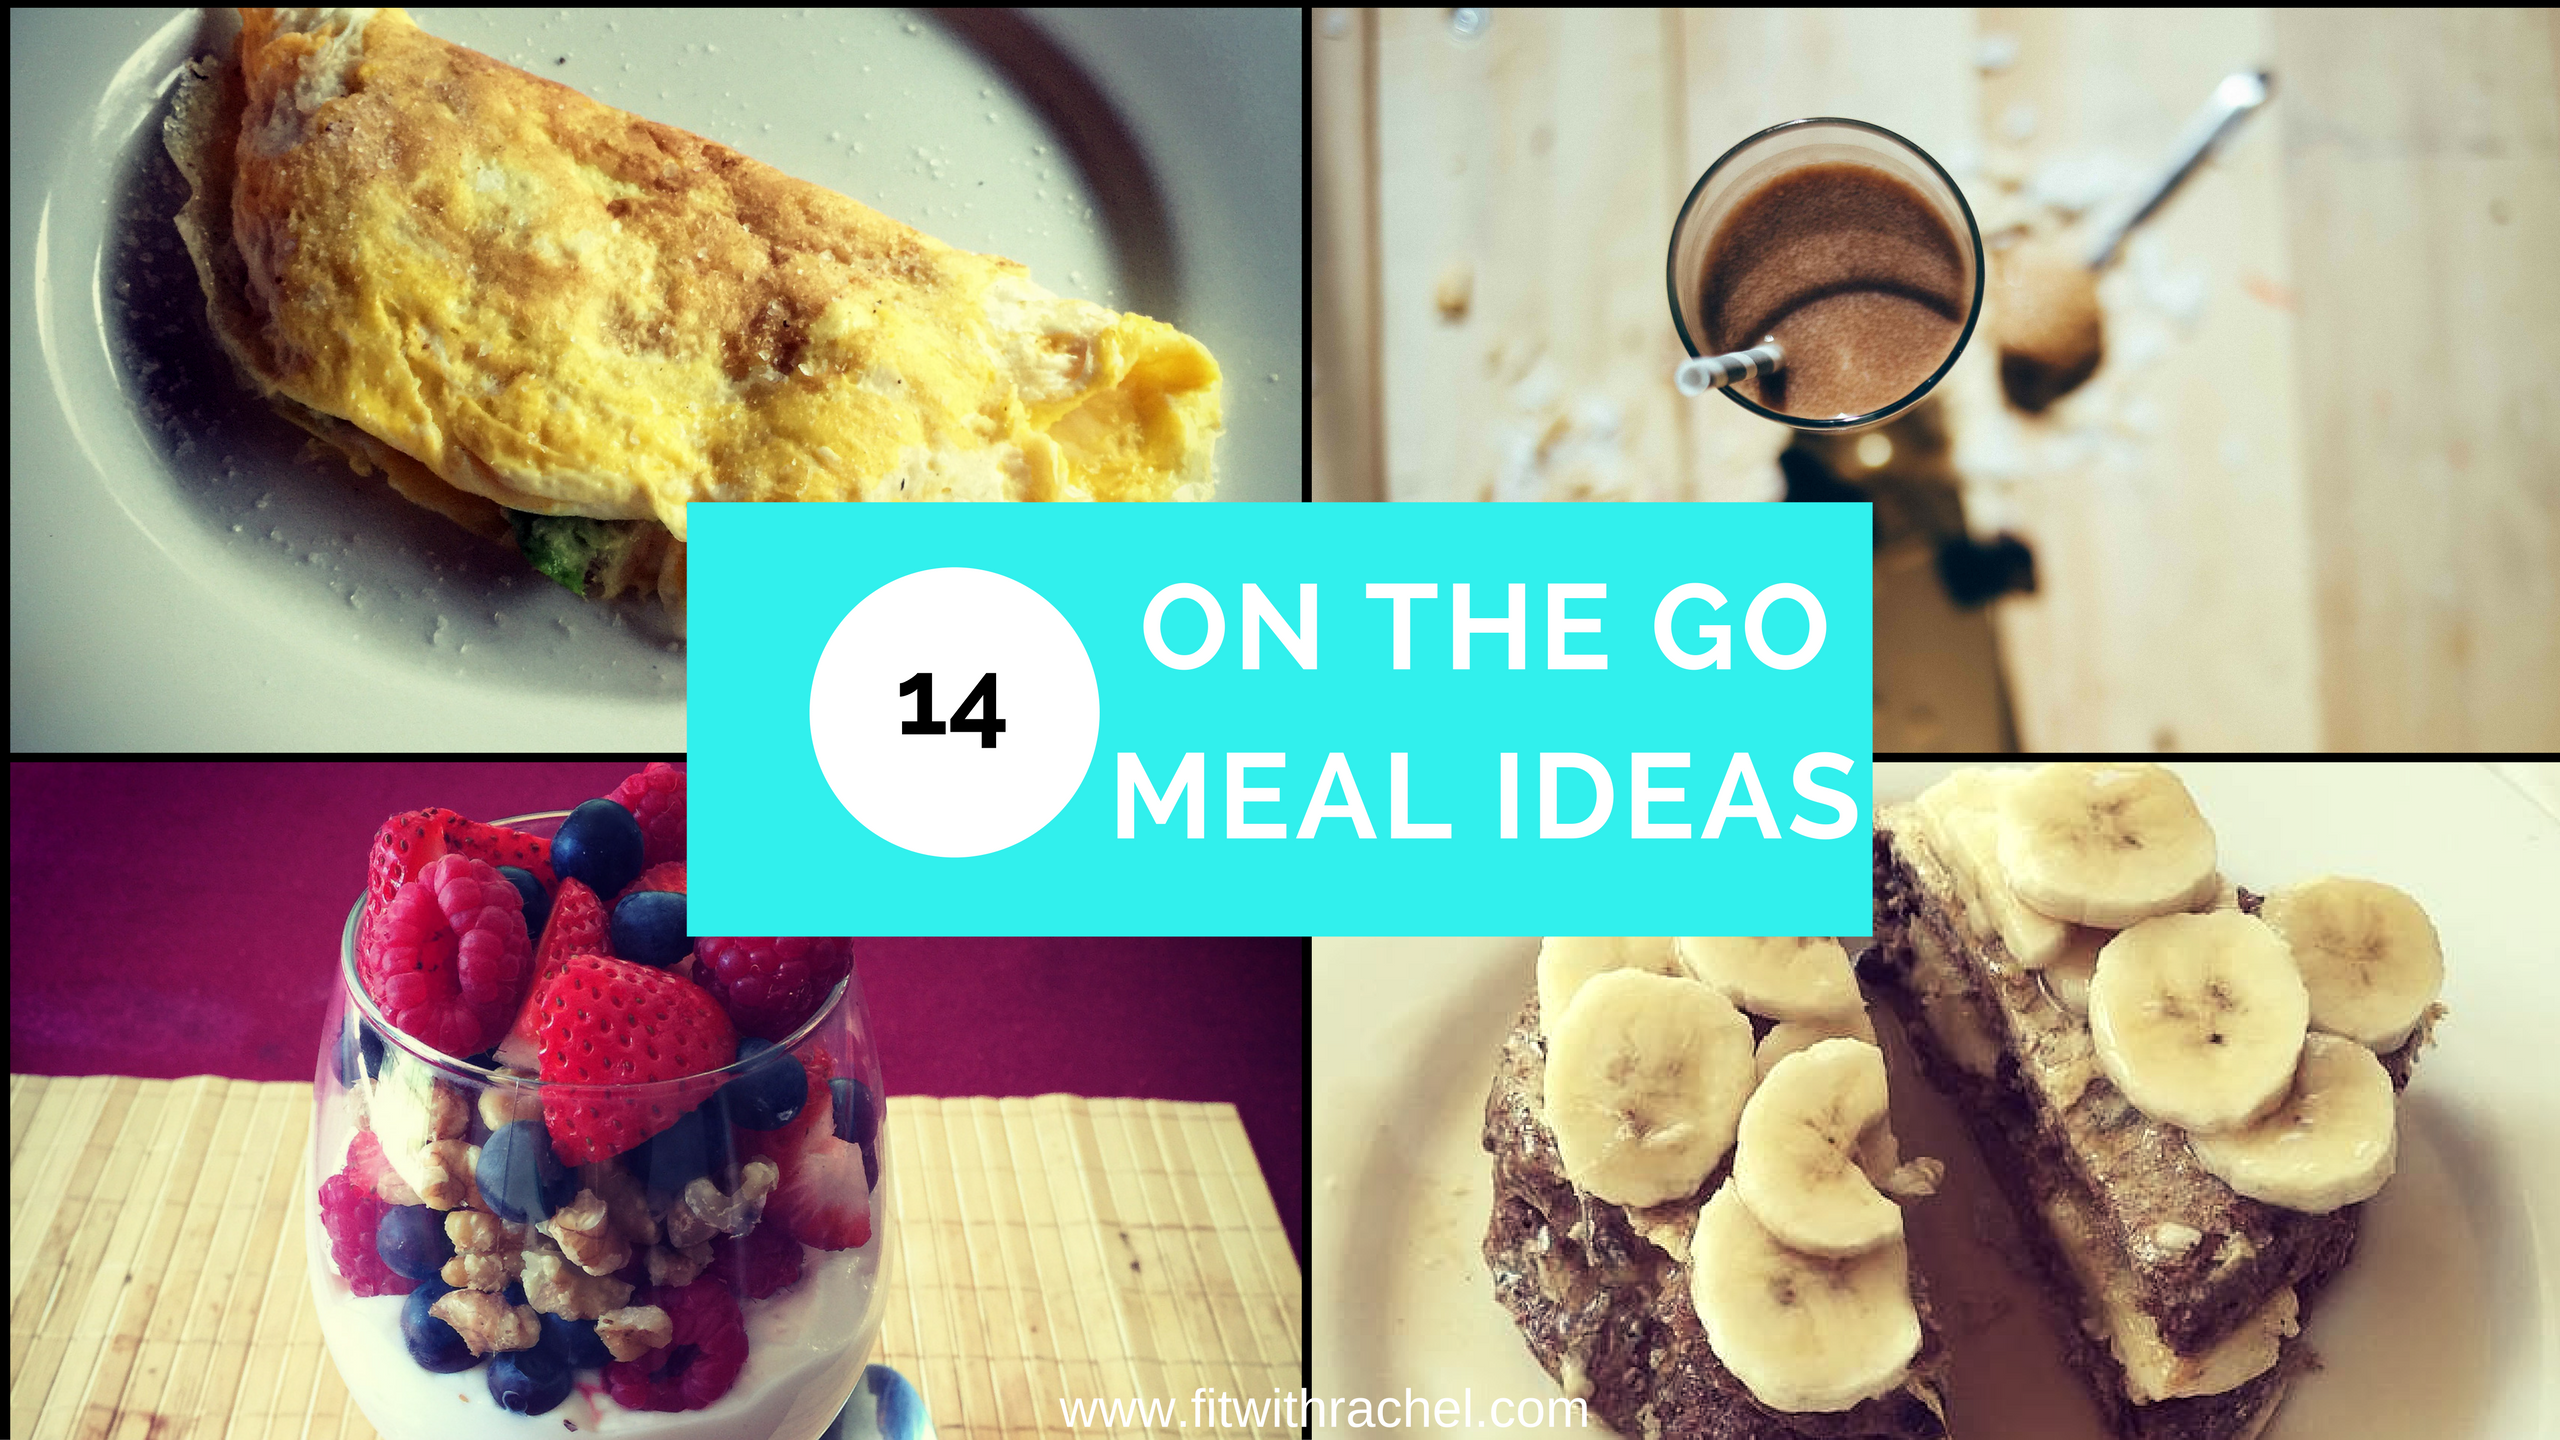 14 On the Go Meal Ideas